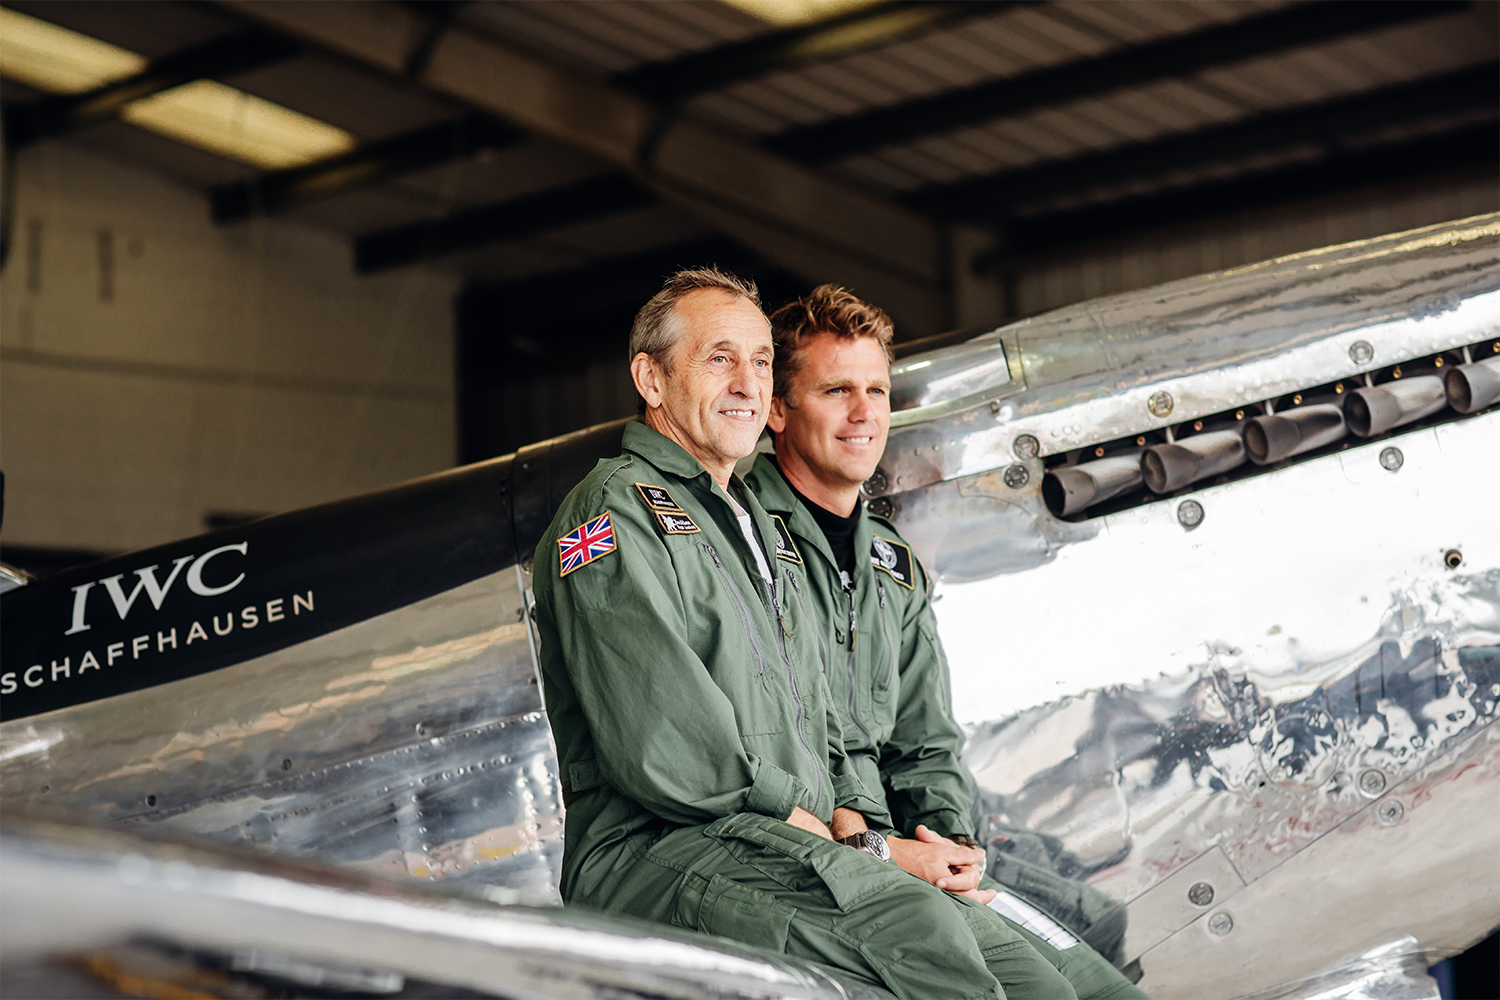 Silver Spitfire The Longest Flight Pilots Steve Boultbee-Brooks and Matt Jones